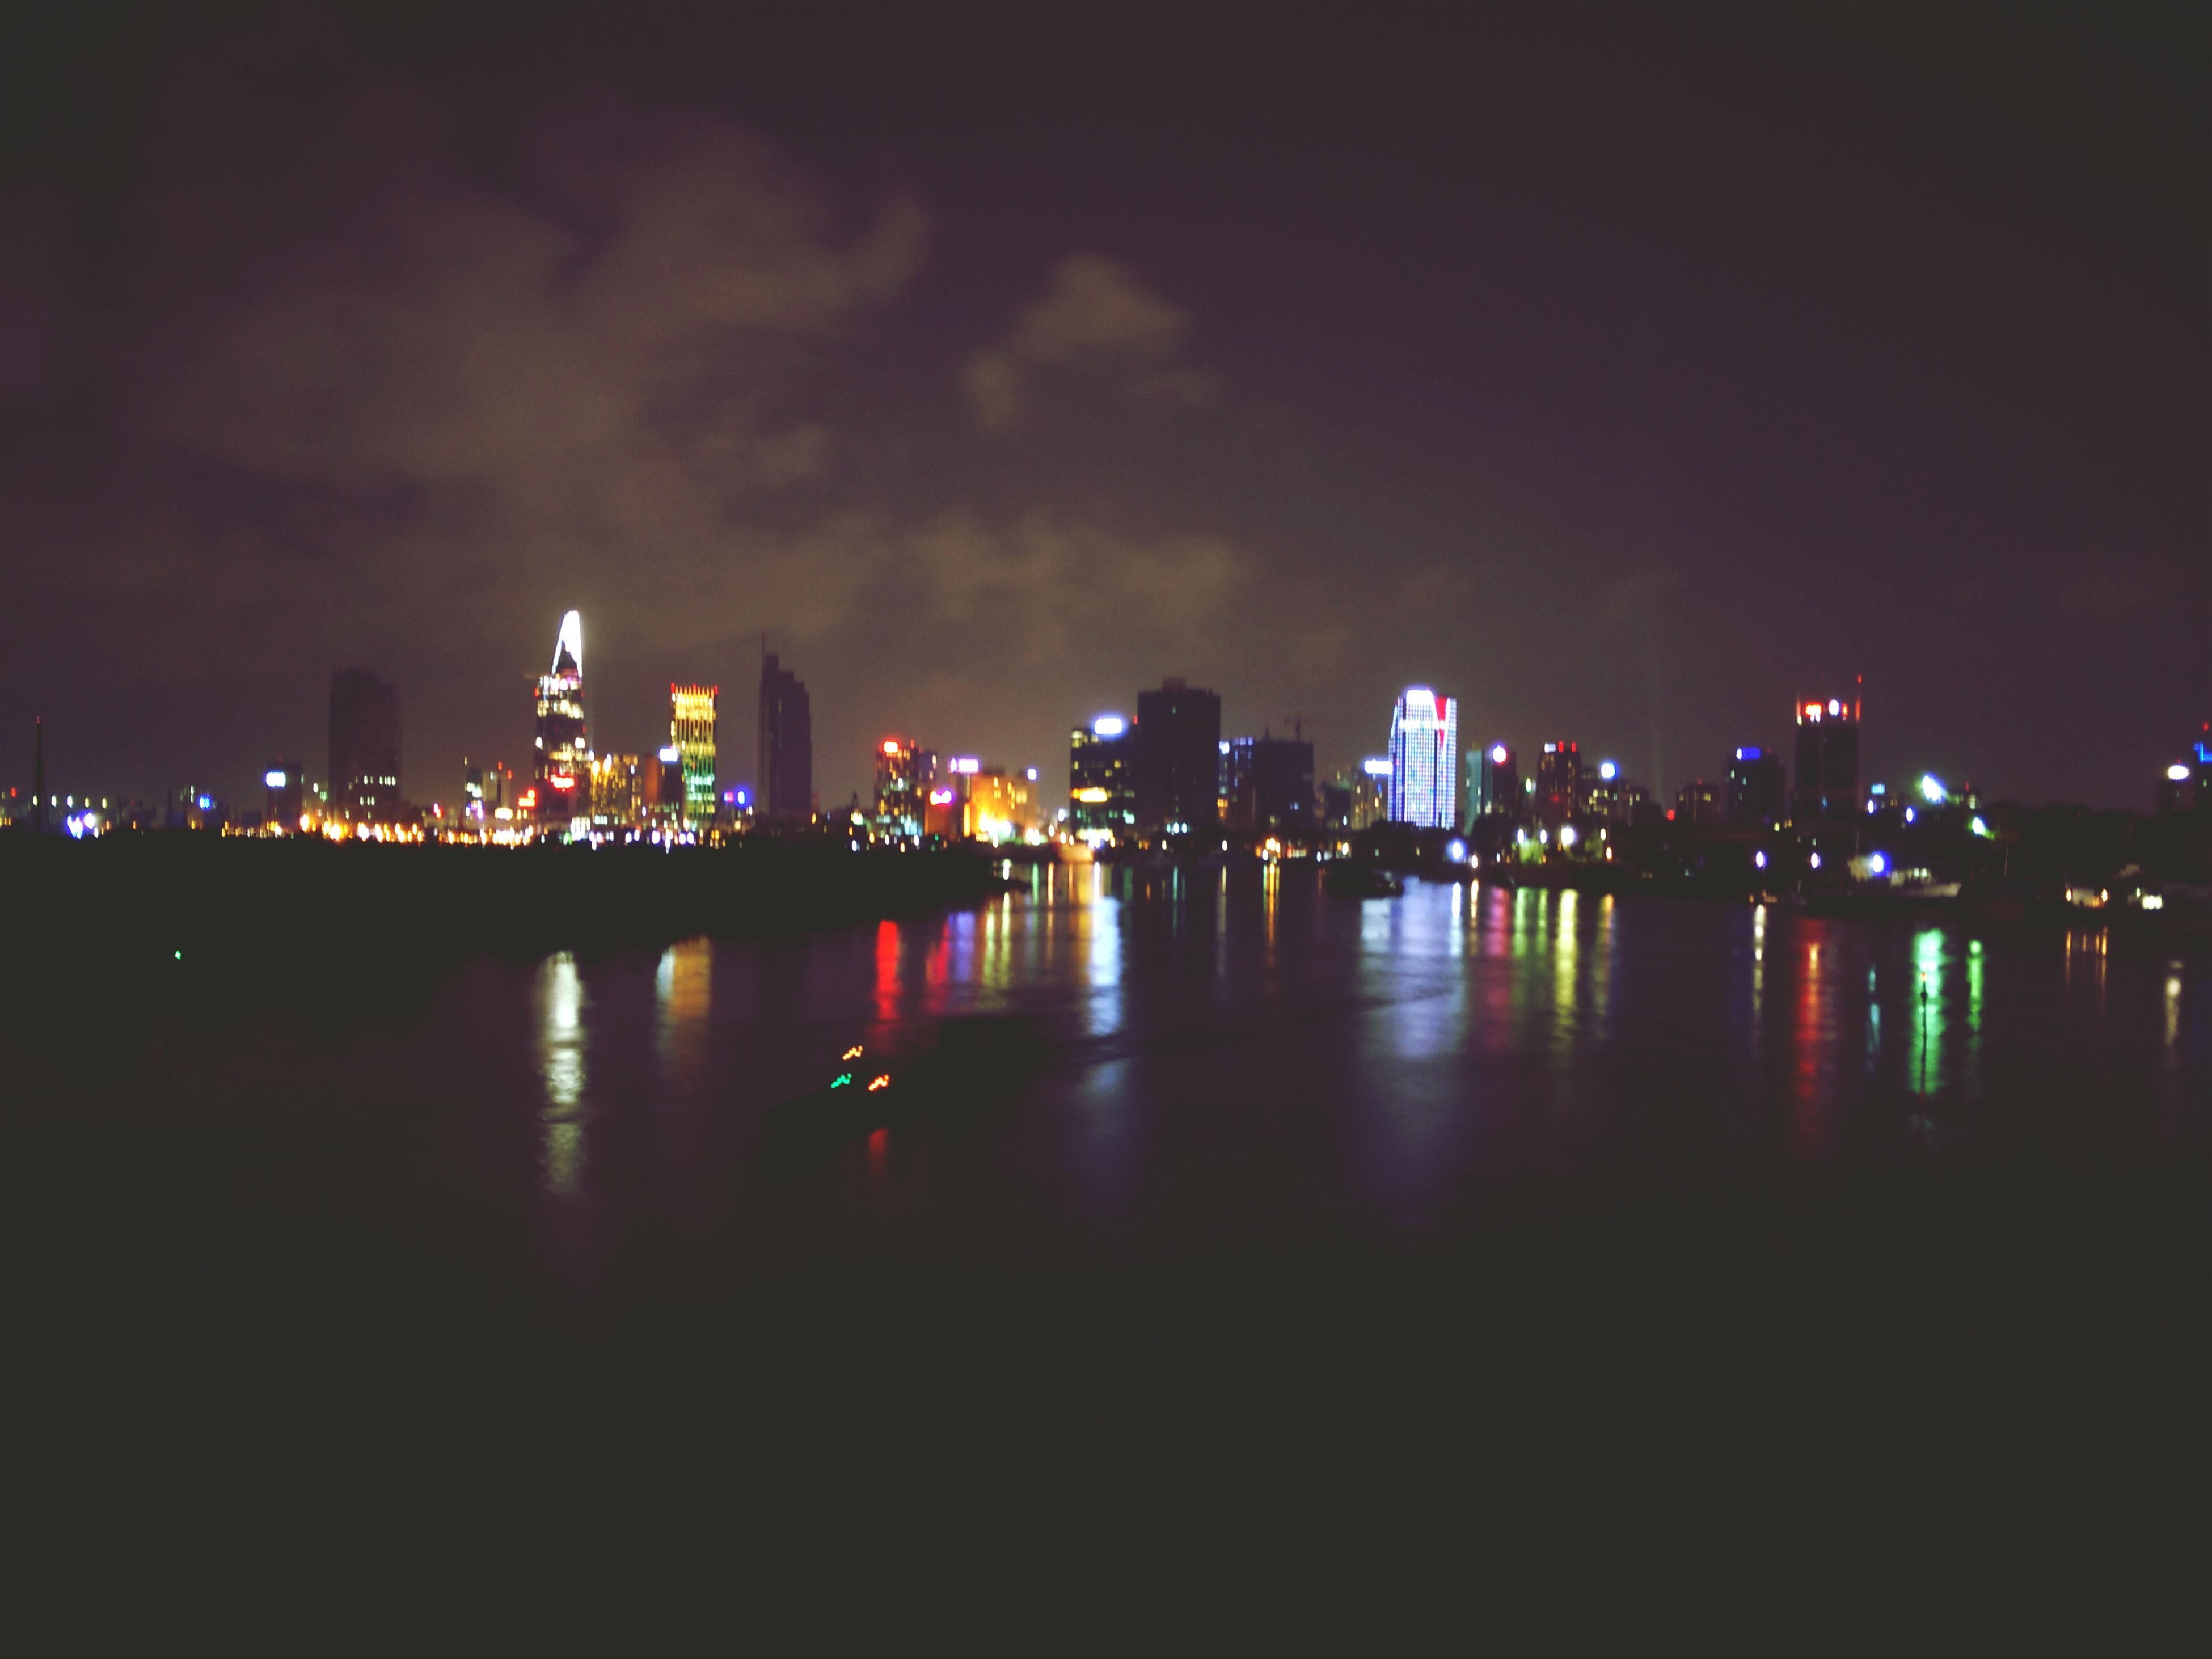 illuminated, night, water, building exterior, architecture, city, built structure, reflection, waterfront, river, cityscape, sky, sea, mid distance, lighting equipment, skyscraper, copy space, urban skyline, city life, dark